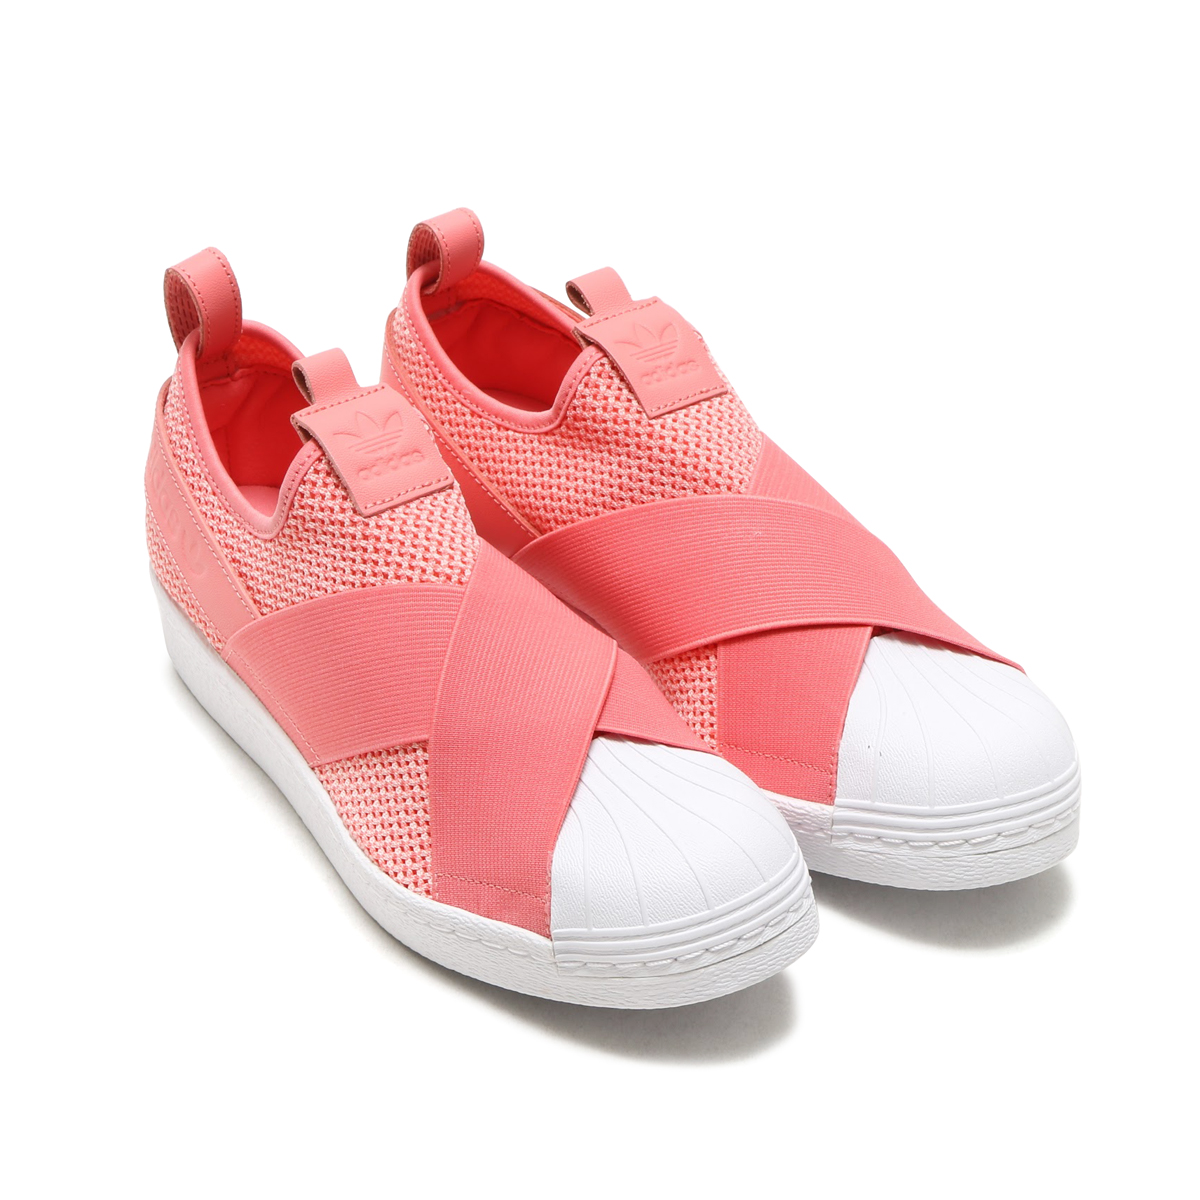 adidas Originals SUPERSTAR SlipOn W (Adidas originals superstar slip-on)  Tactile Rose Tactile Rose Running White 17FW-I b4adb6285